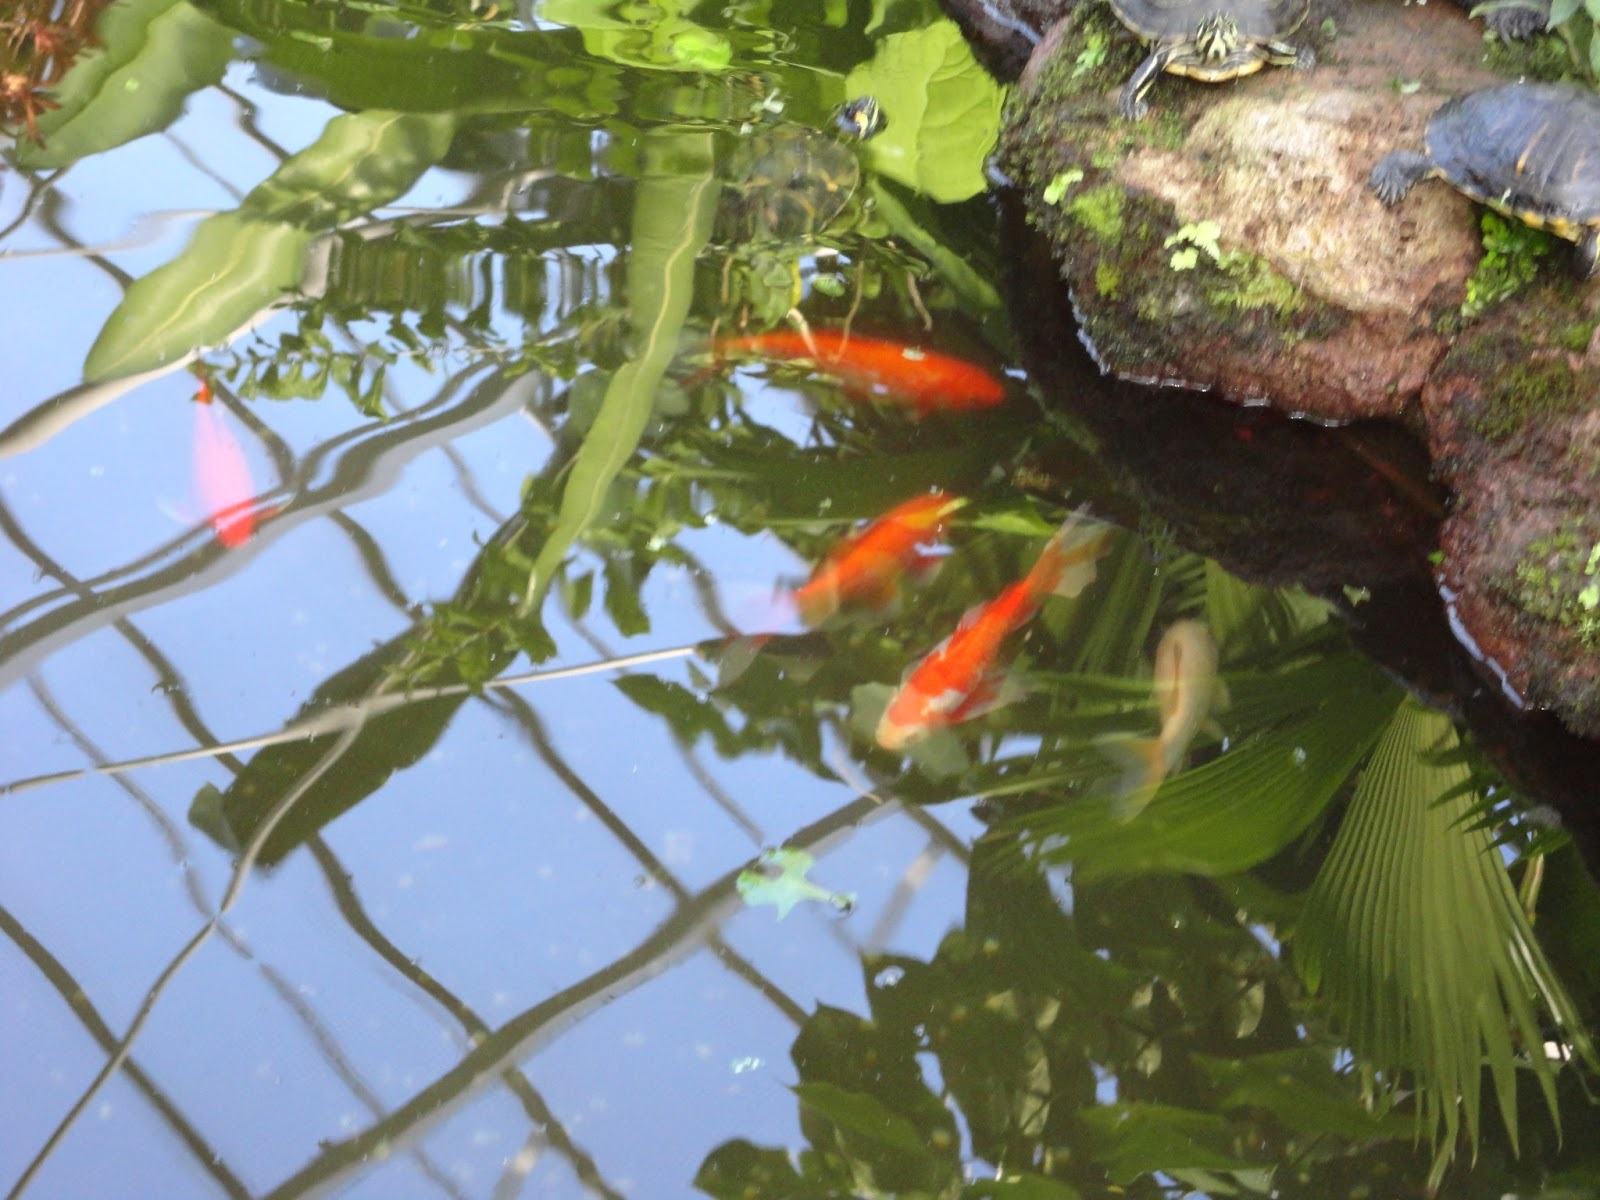 Paradise Florists Blog Koi Fish Pond